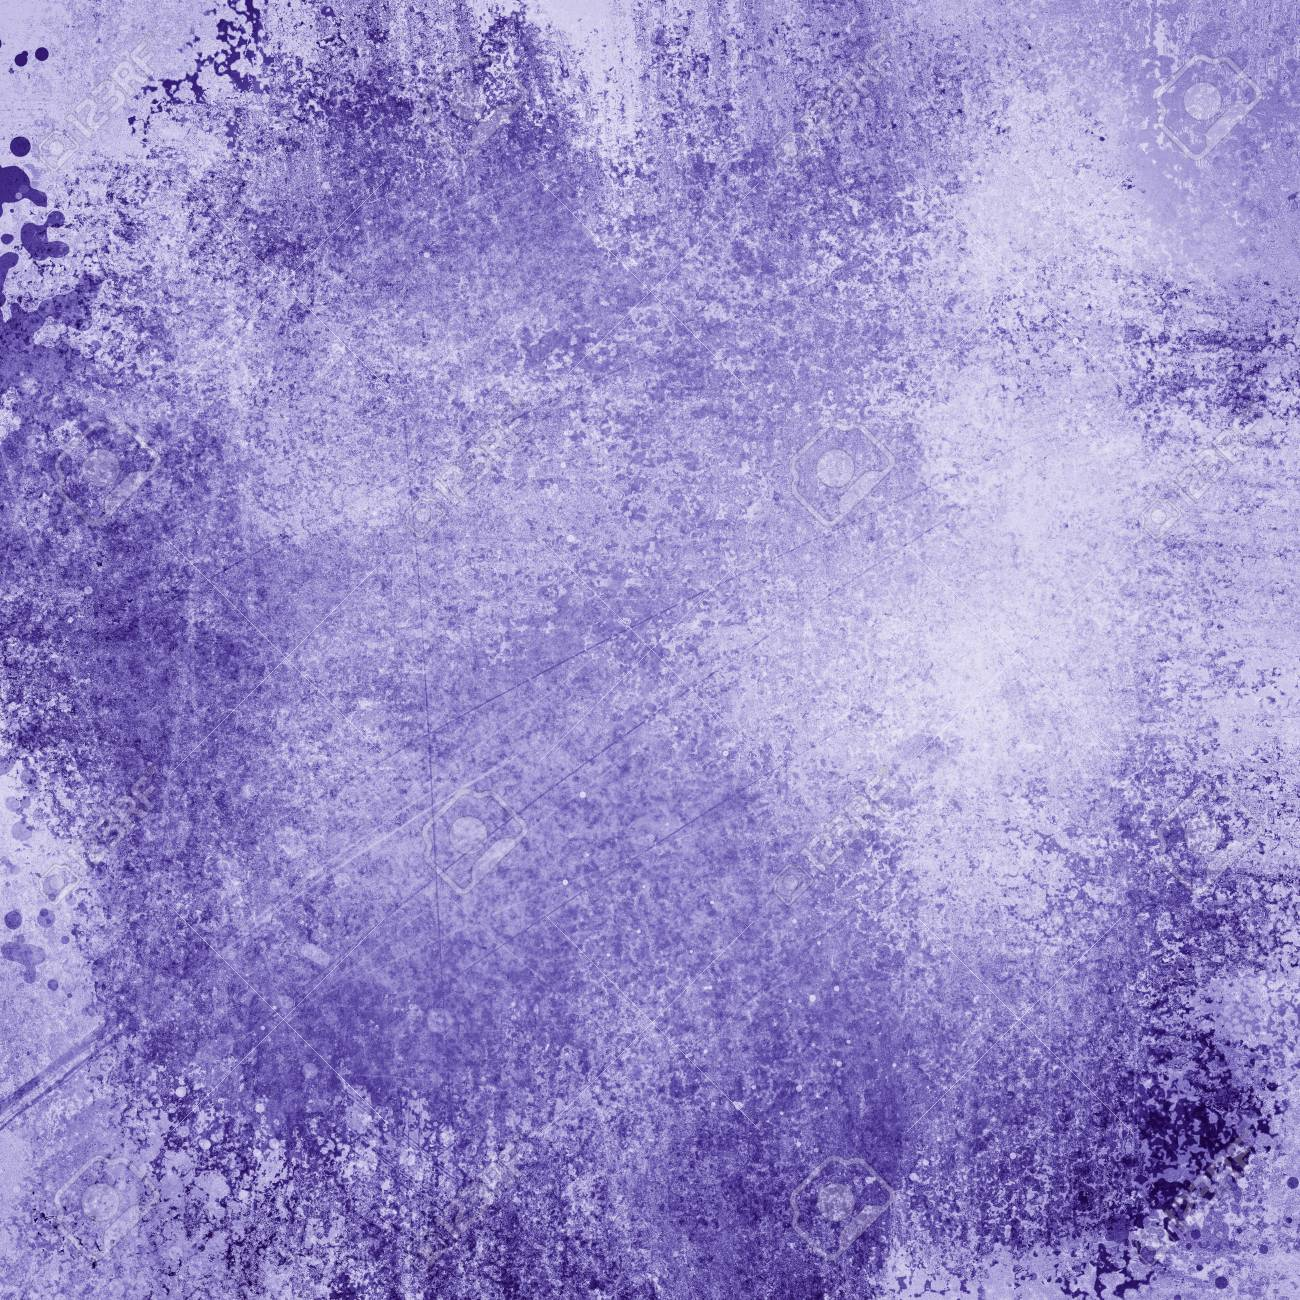 Old Purple Paper Background With Grunge And Messy Stains Paint Blotches Distressed Faded Wallpaper